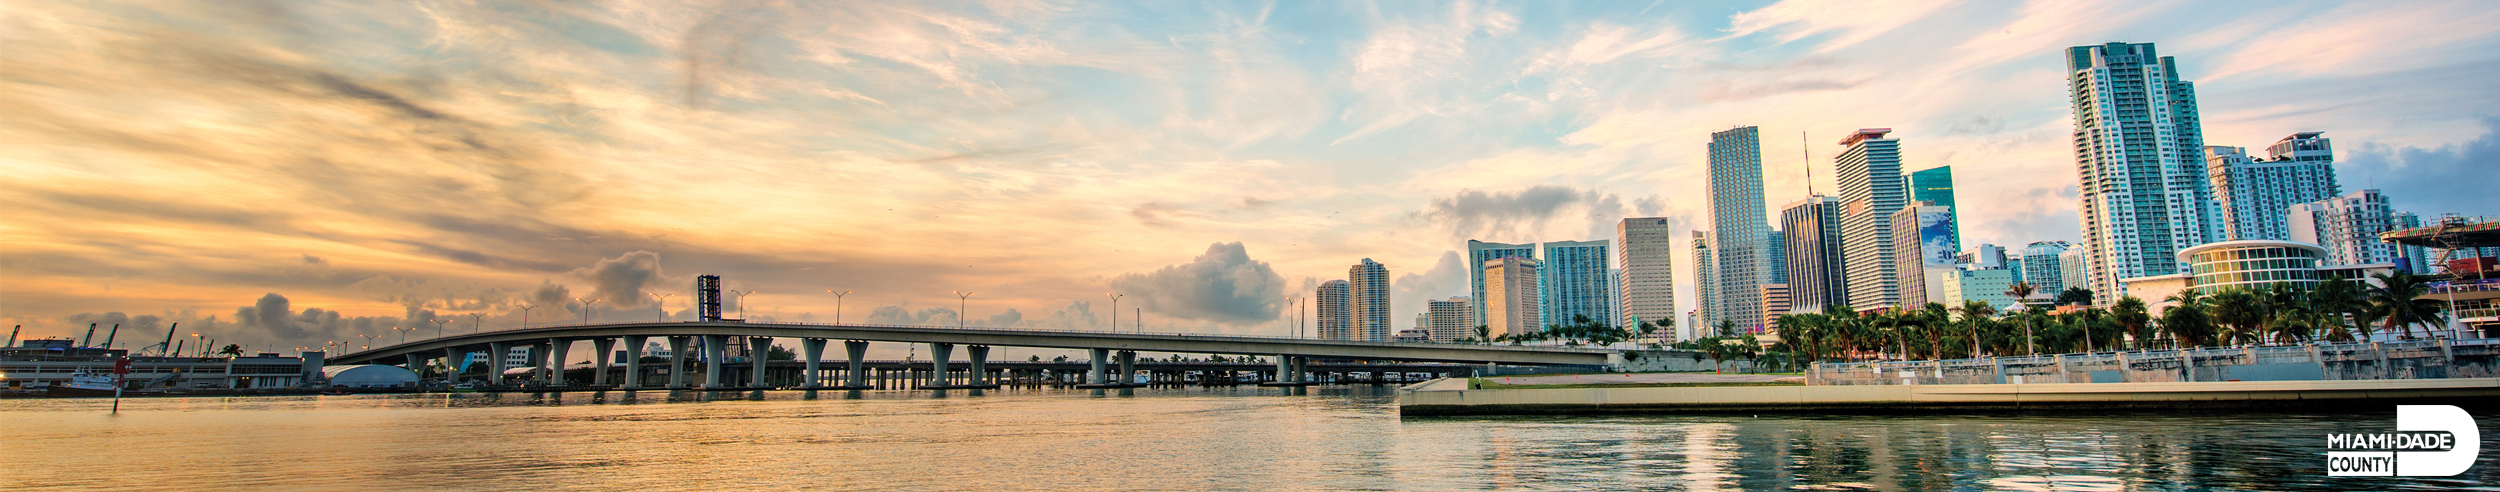 Miami-Dade County Weekly Construction Report Header Image